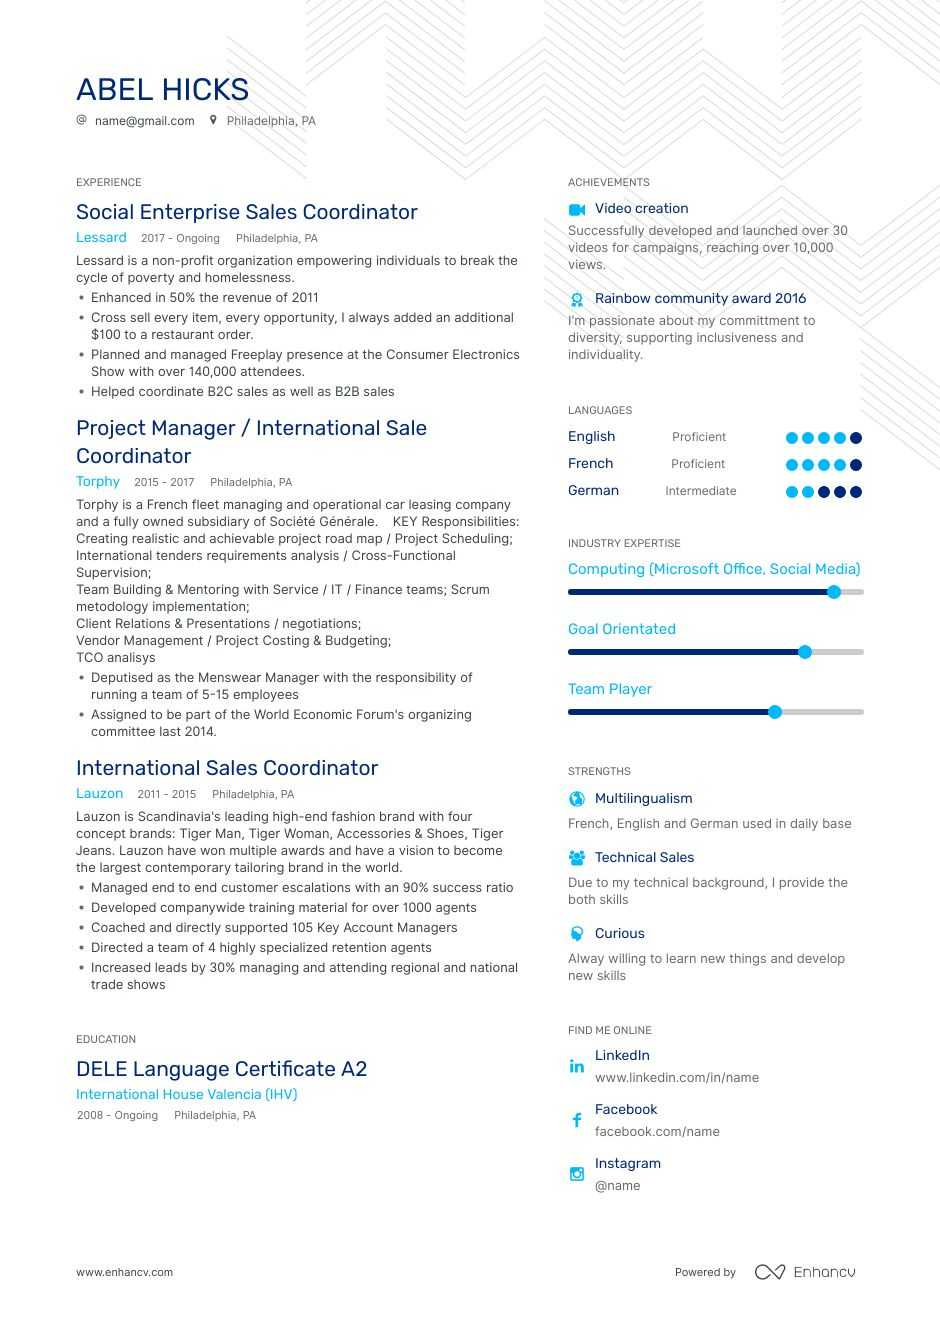 coordinator resume examples do and don ts for enhancv leasing microsoft office knowledge Resume Leasing Coordinator Resume